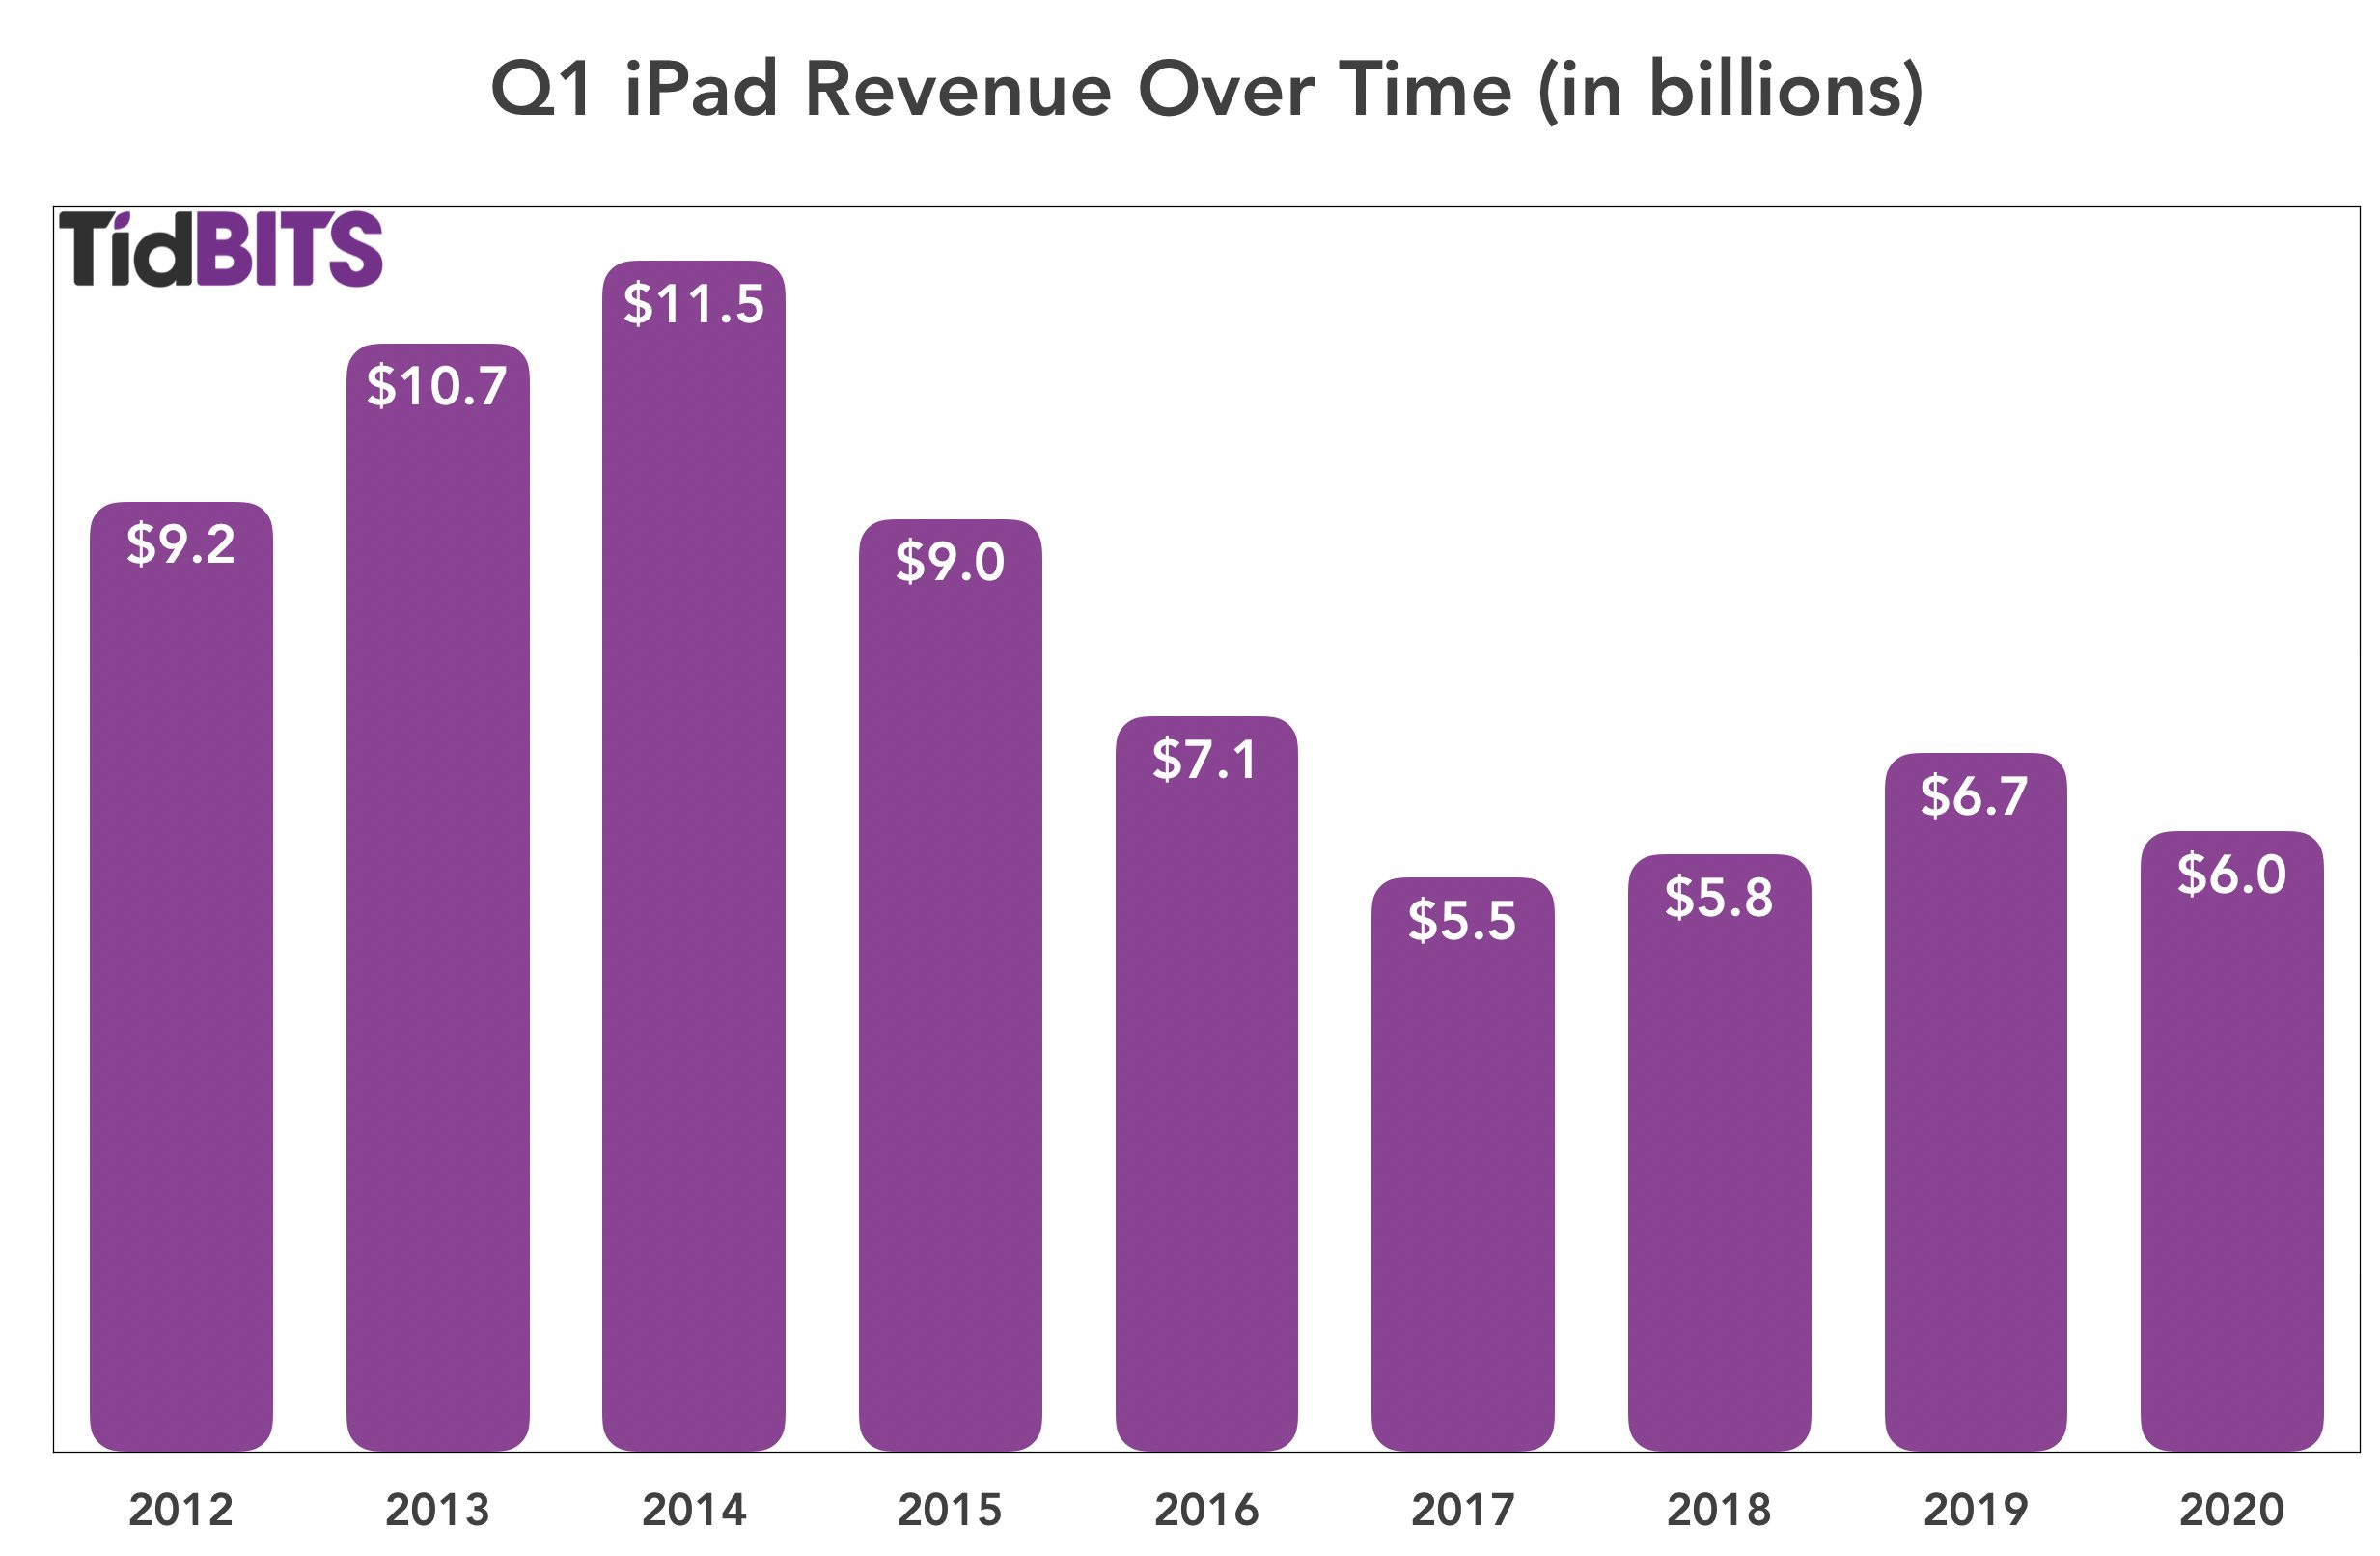 Q1 iPad revenue over time